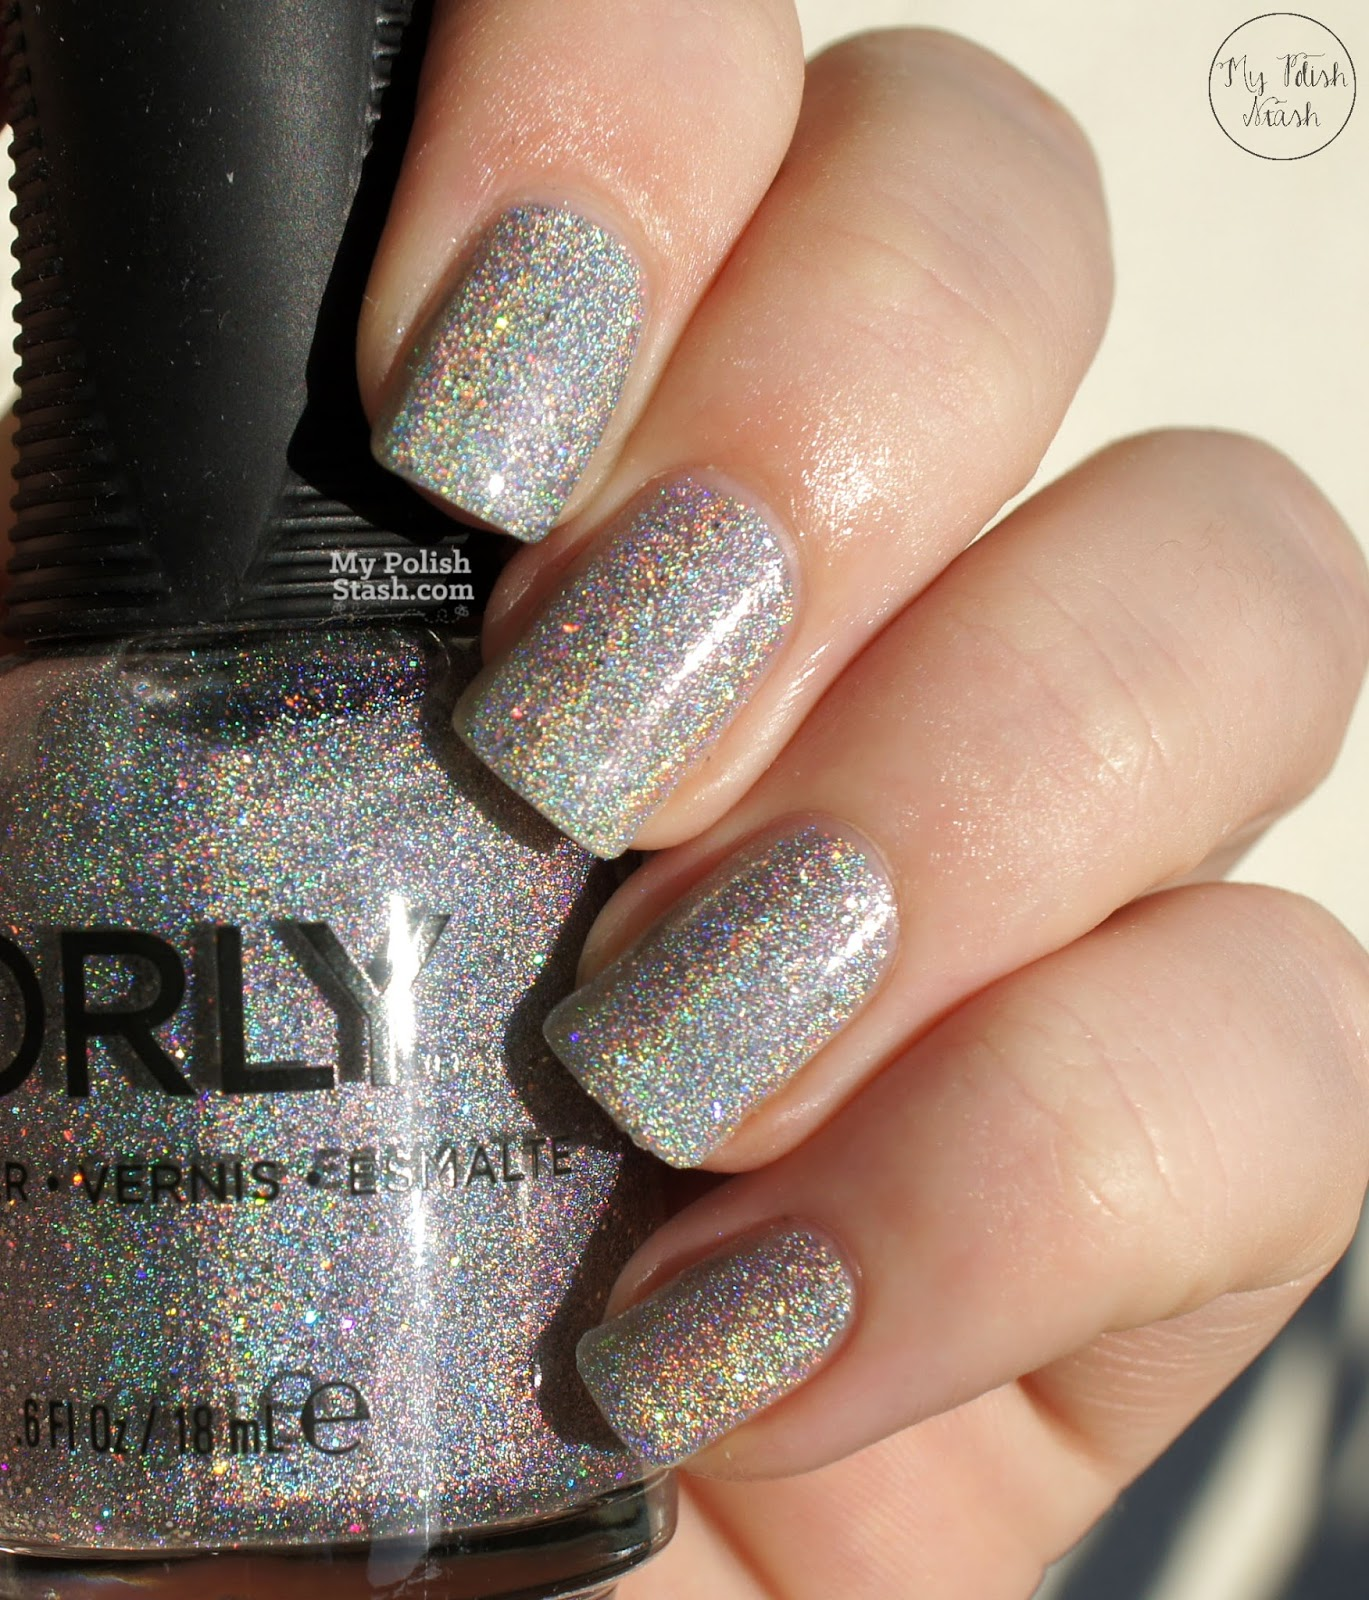 My Polish Stash: [Swatch & Review] Orly - Mirrorball